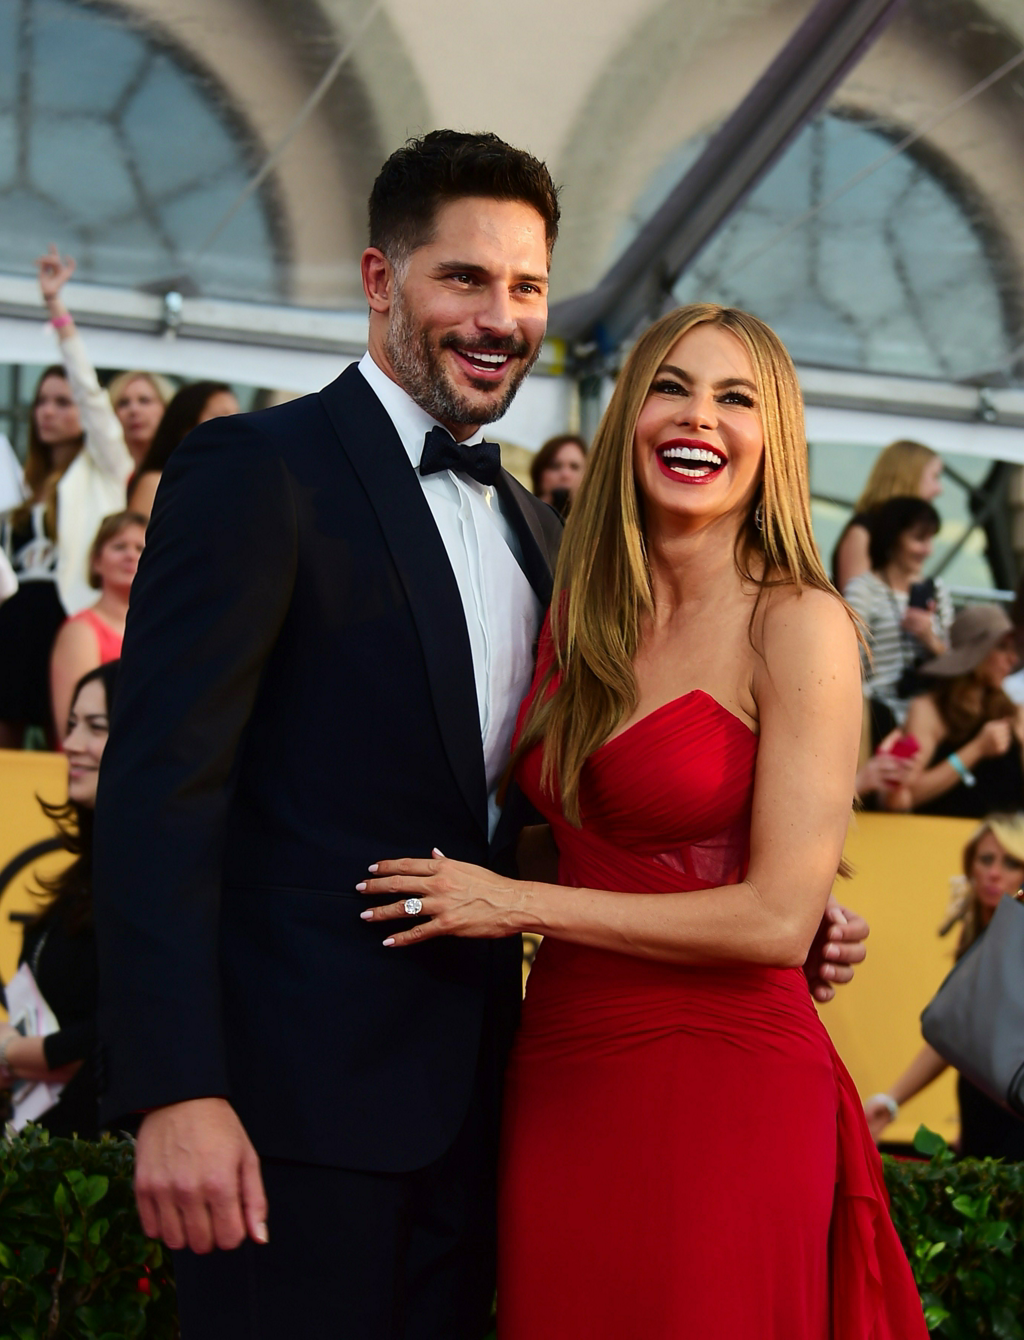 The Hottest Photo of Joe Manganiello Has Surfaced http://t.co/QSVcCxDuRL http://t.co/jtrc2z2ycD